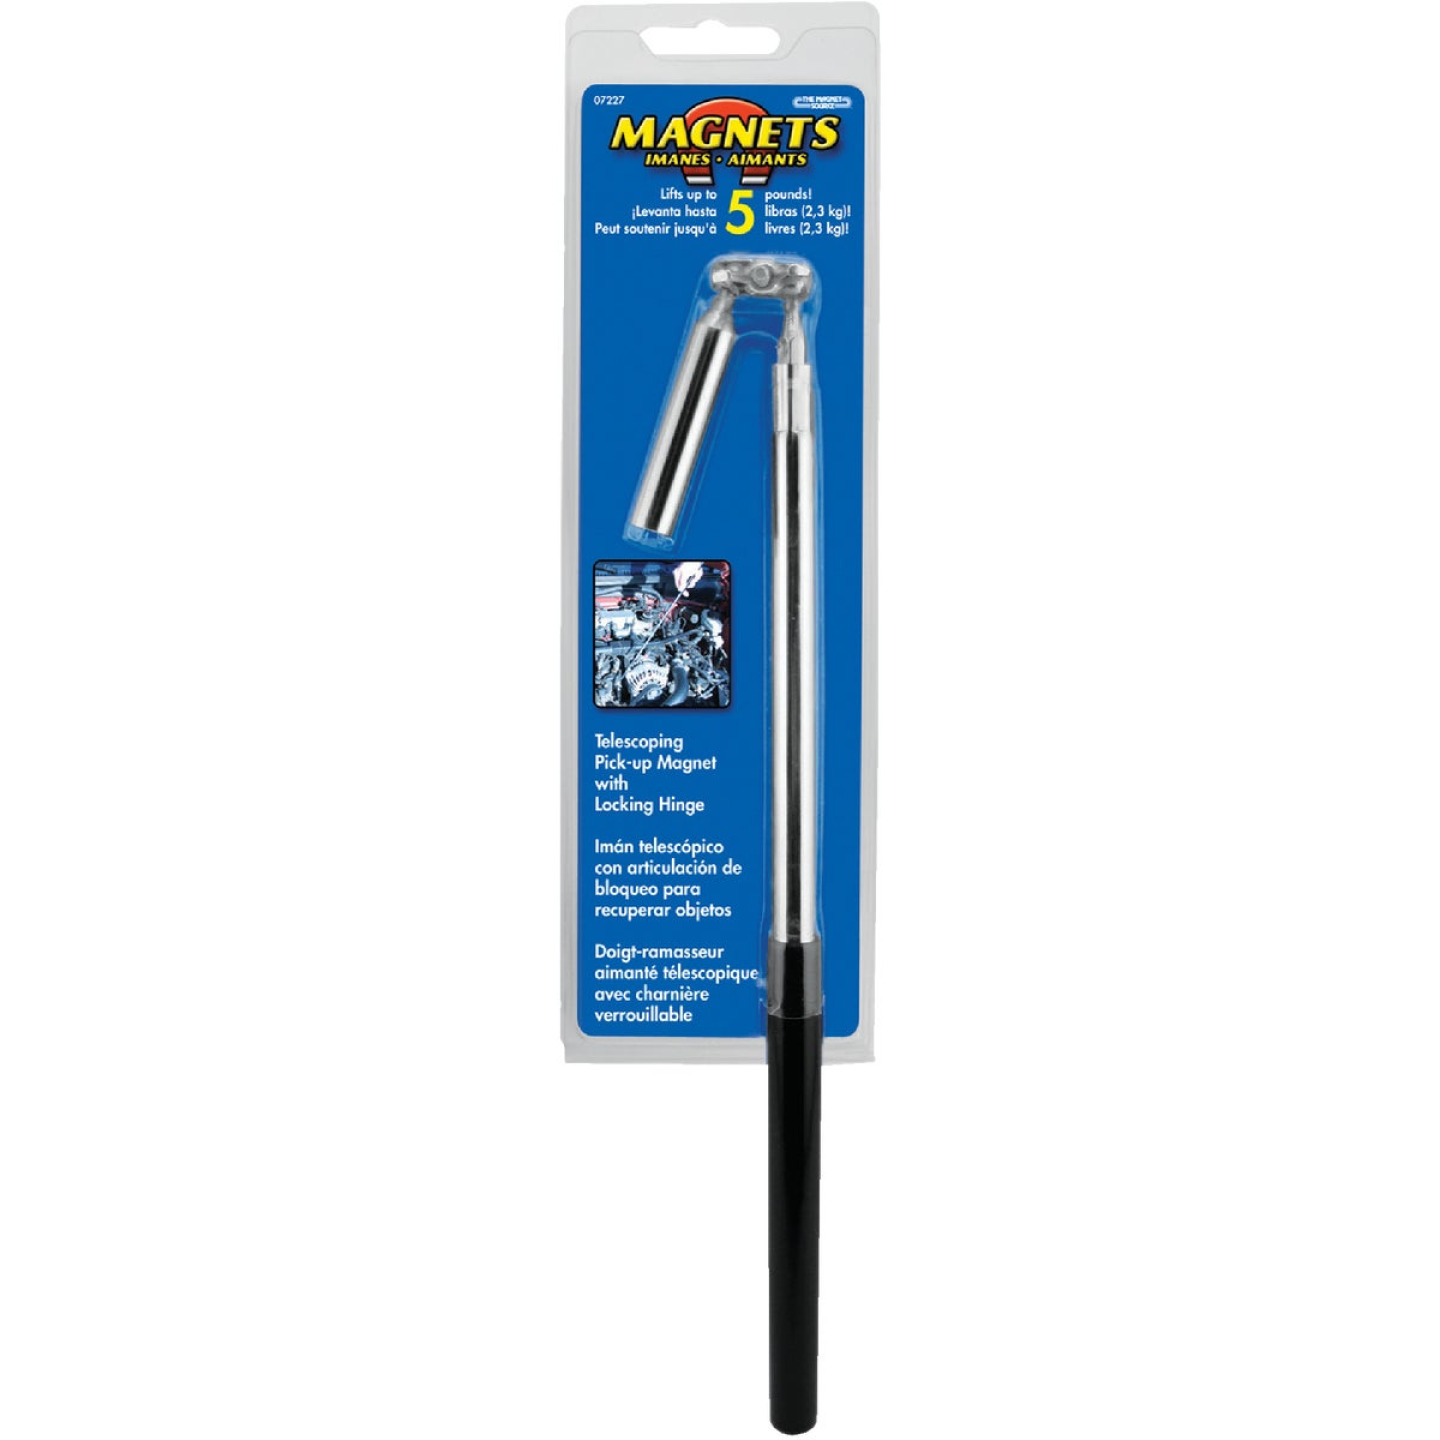 Master Magnetics 24 in. 5 Lb. Magnetic Pick-Up Tool Image 2